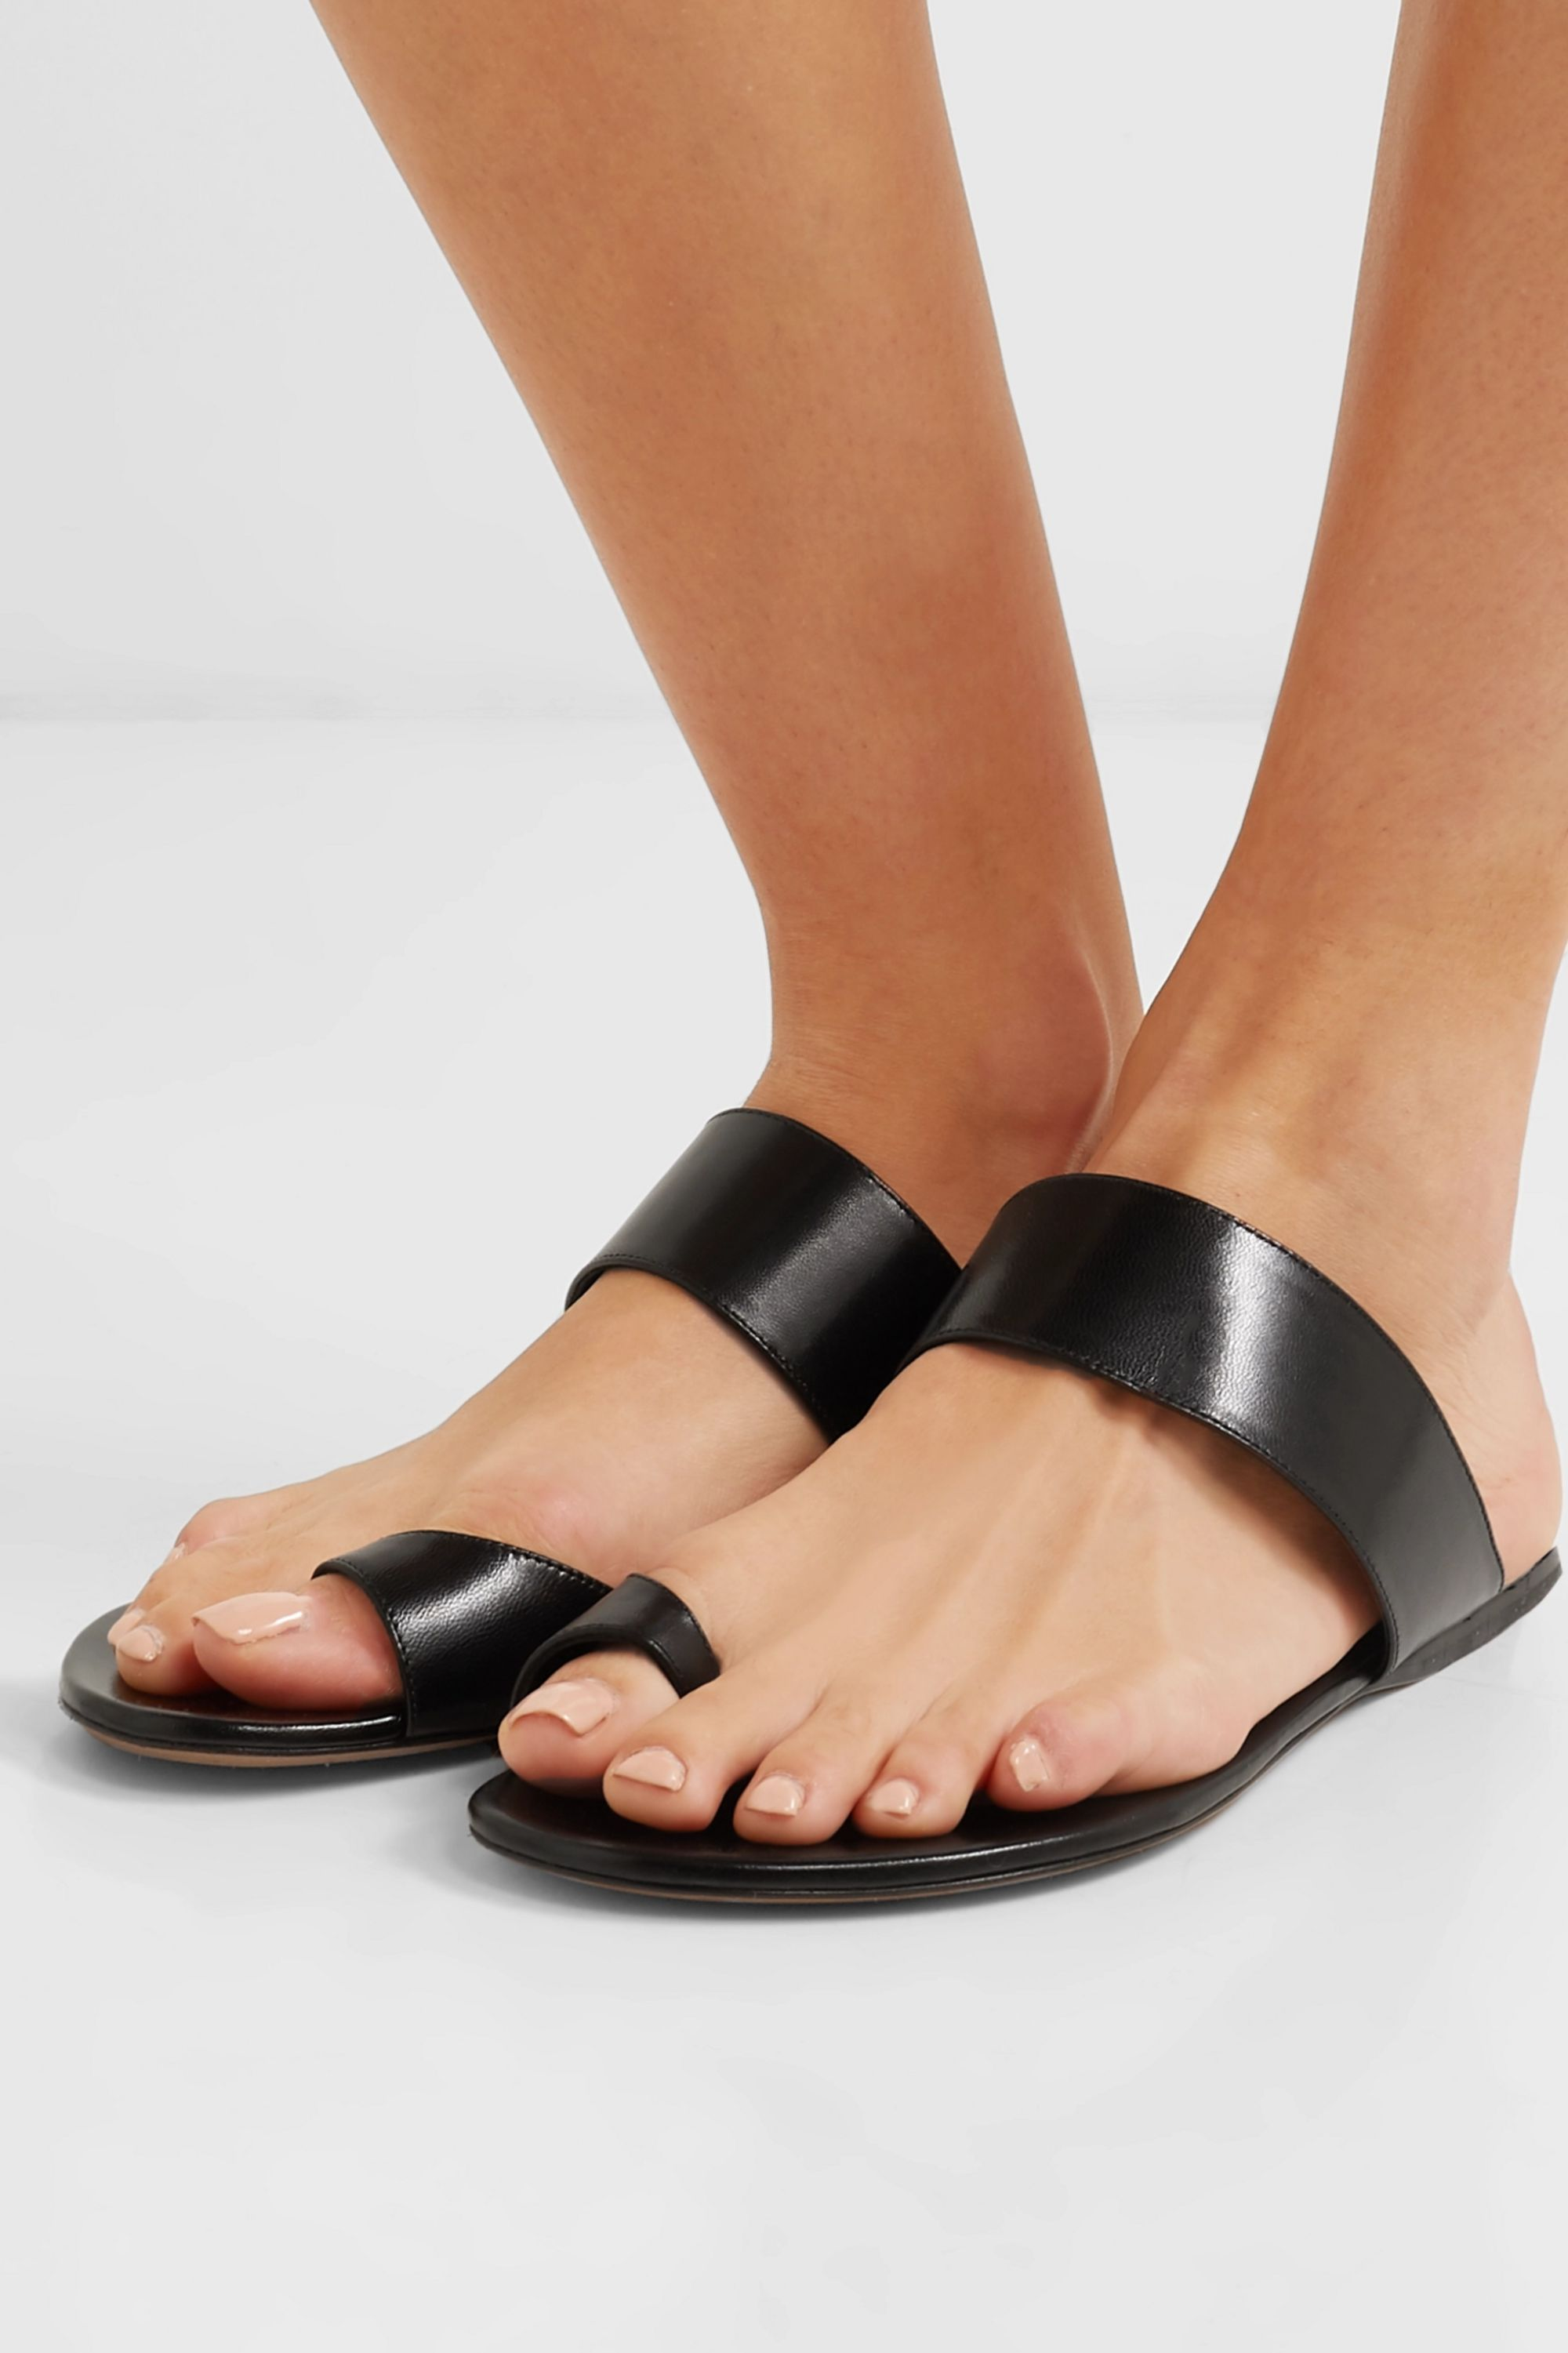 The Row Infradito leather sandals